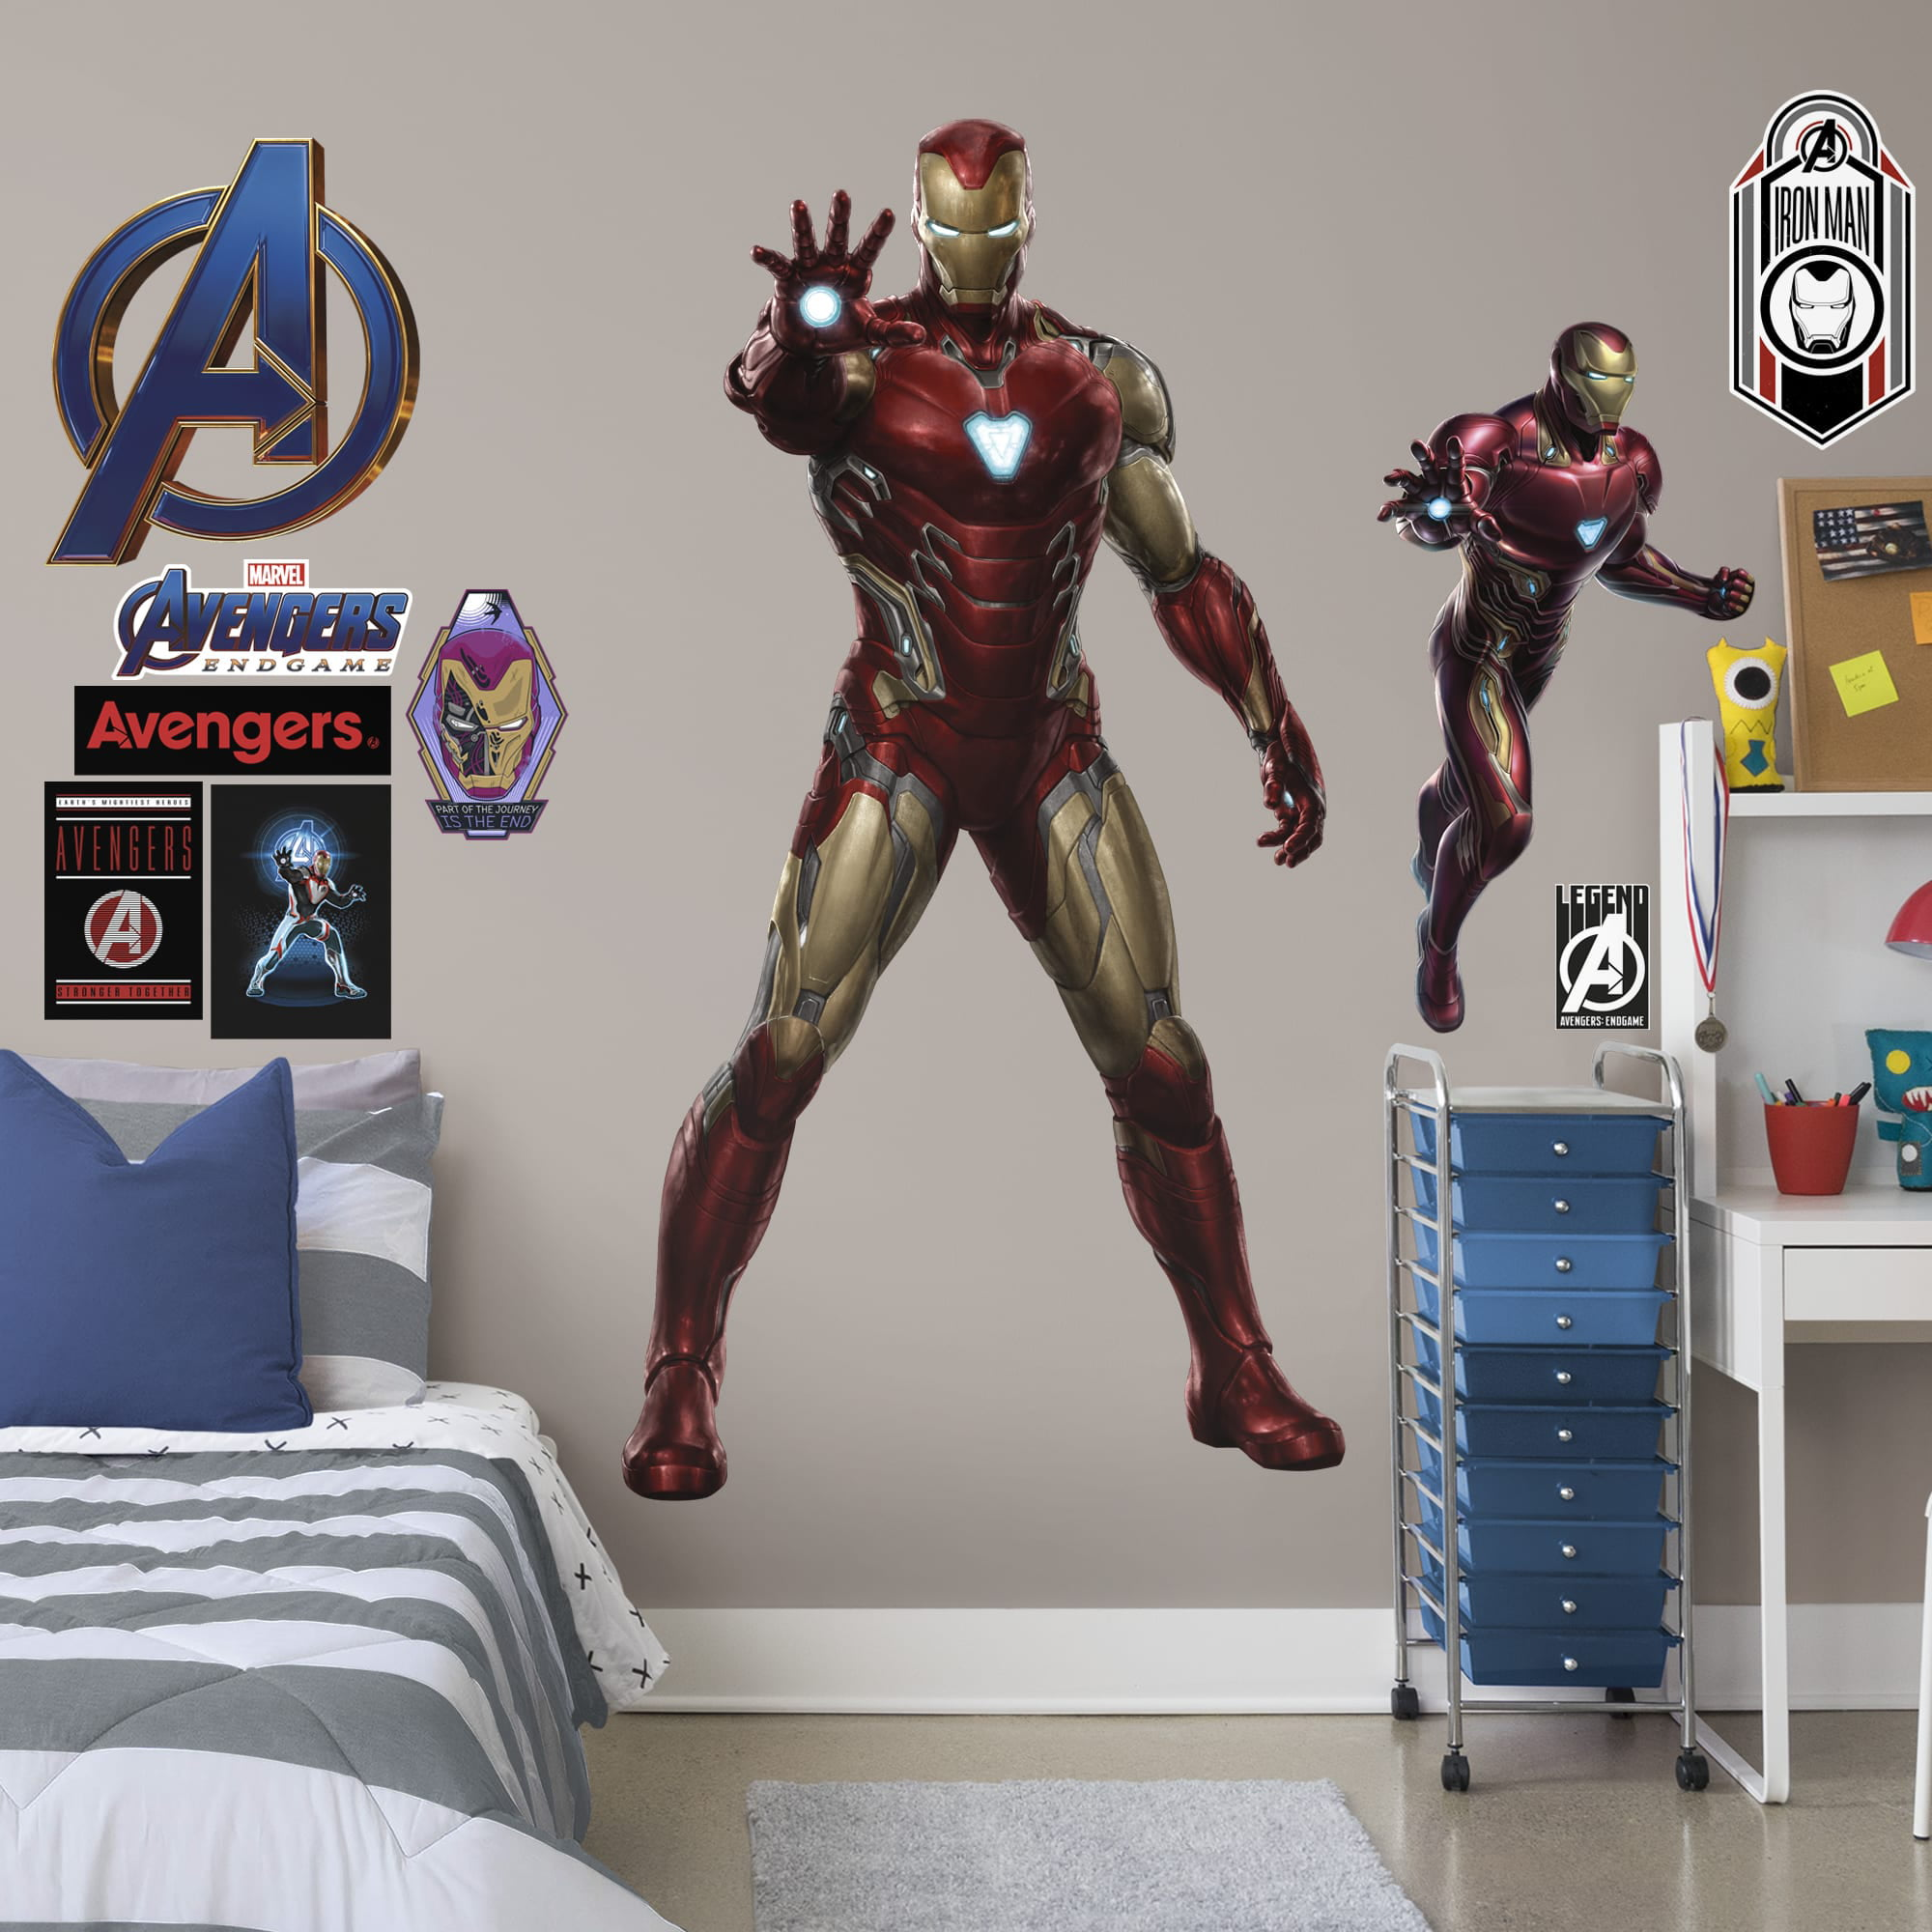 Marvel Avengers Iron Man Window Decal Sticker Auto Officially Licenesed